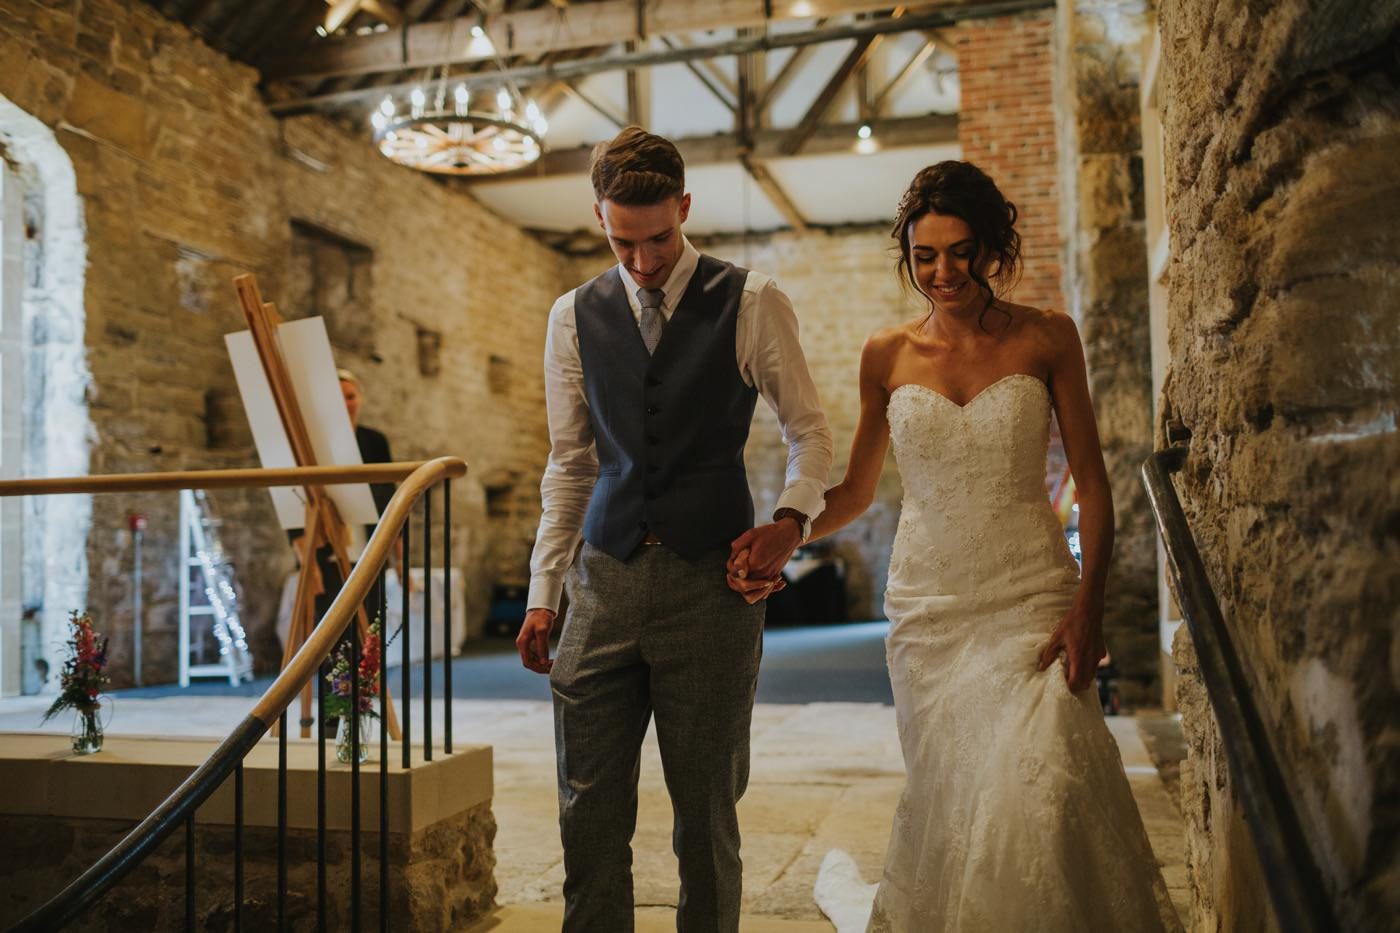 Matt & Emma | Hooton Pagnell Hall & Stable Arches 76